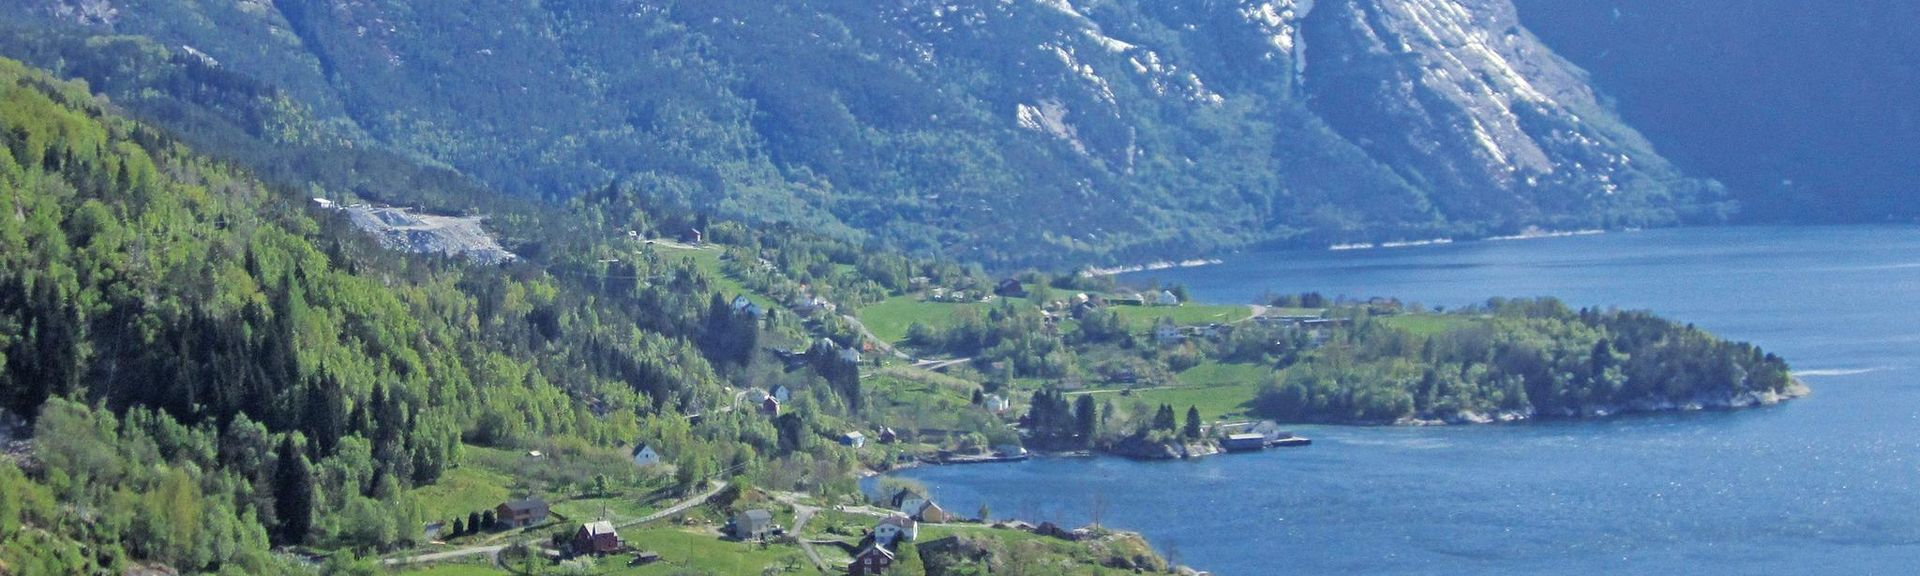 Oystese, Kvam, Vestland, Norway